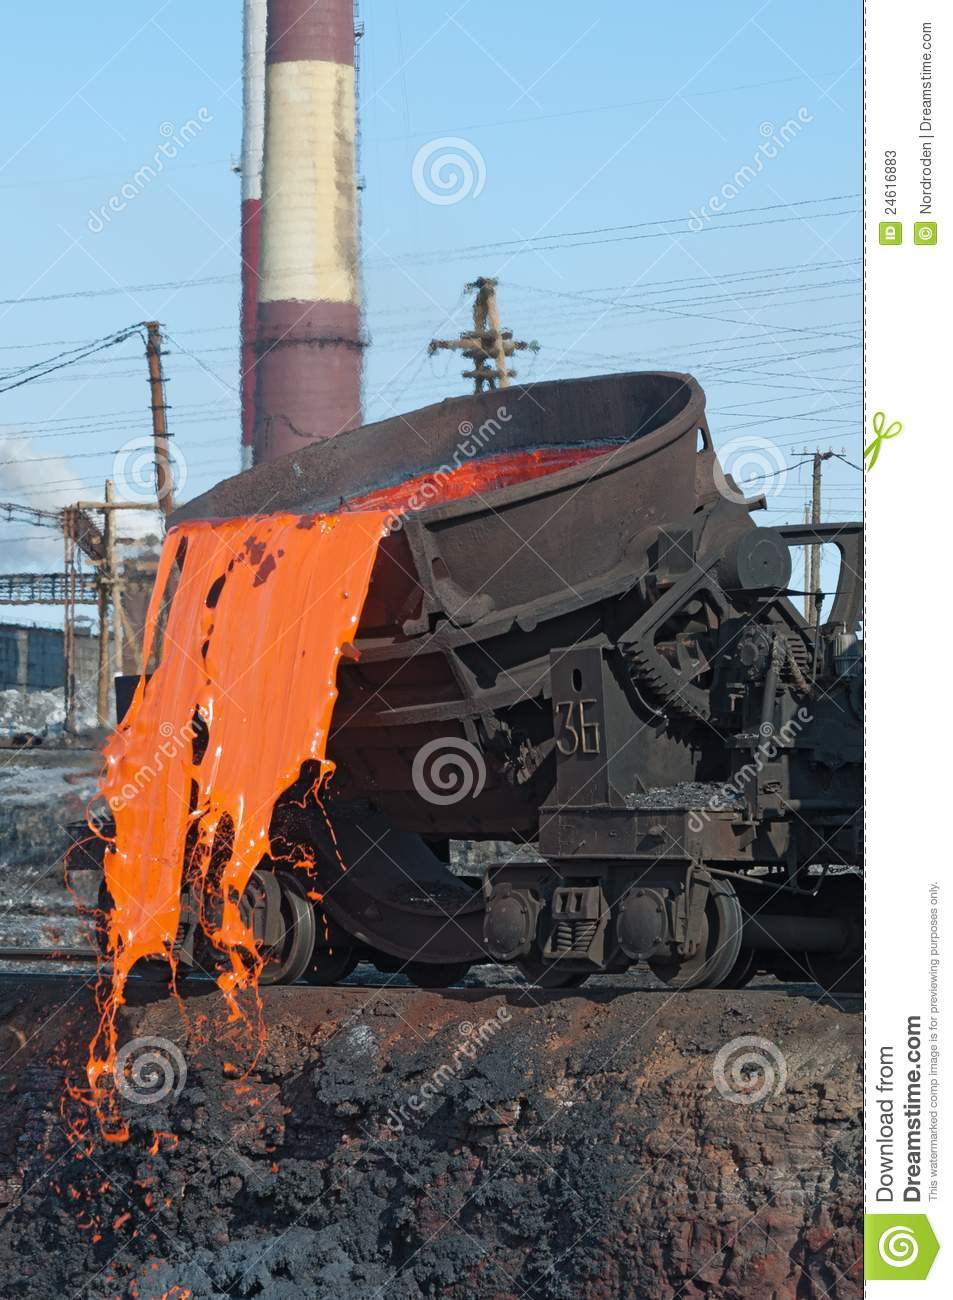 Slag Sawdust Melted : The molten steel is poured into dump stock image